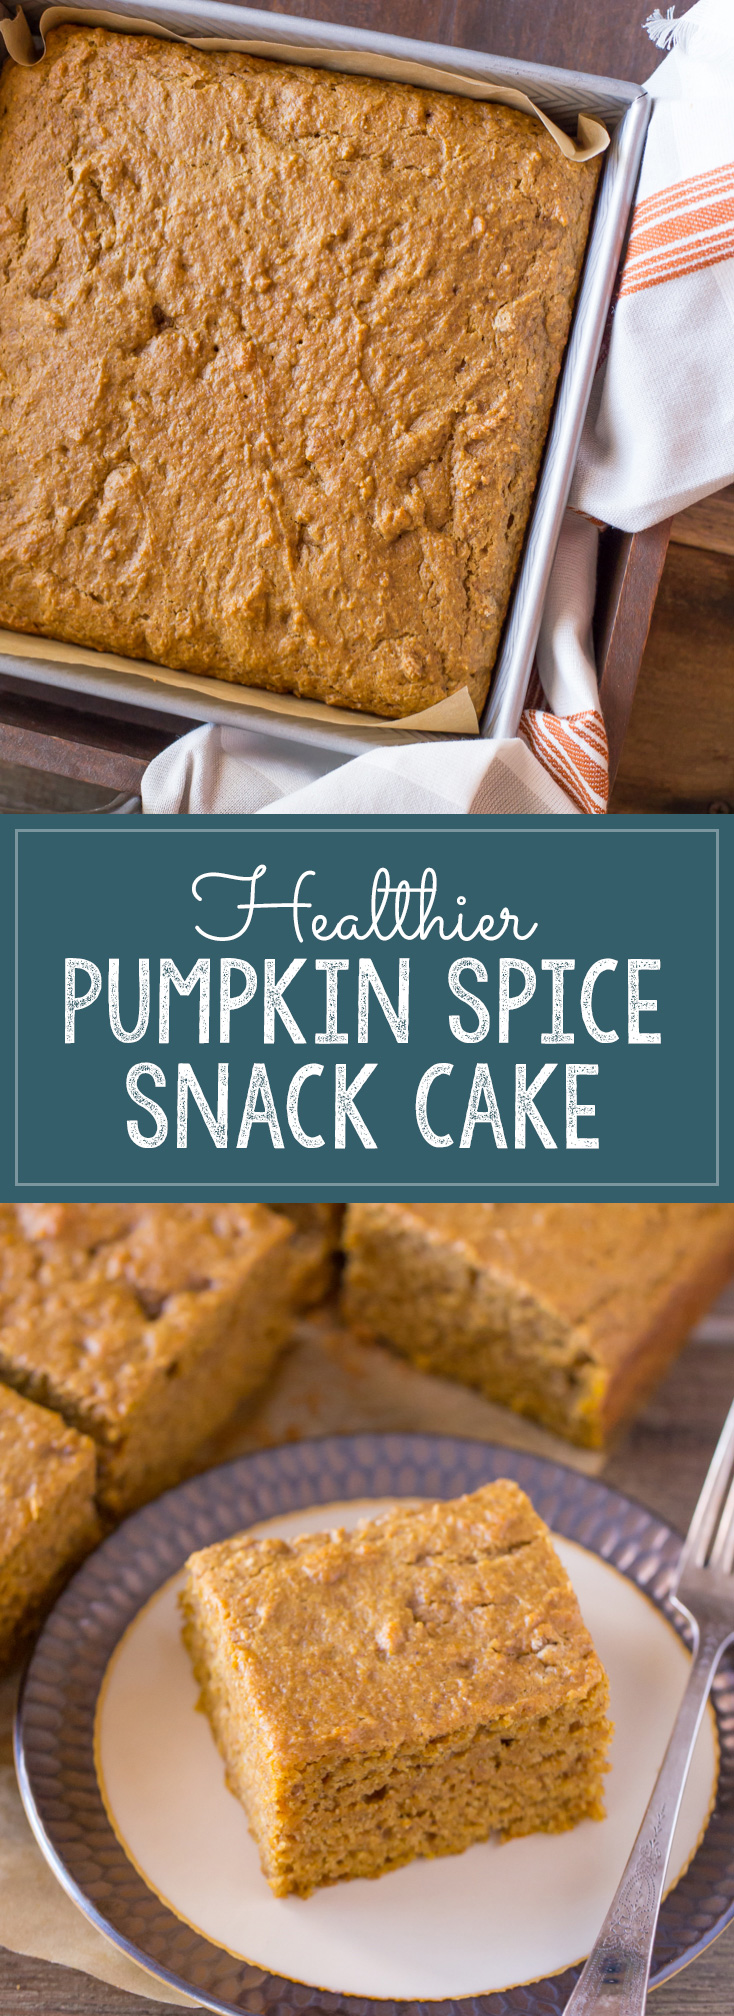 Healthier Pumpkin Spice Snack Cake - A moist, perfectly spiced snack cake made with pumpkin puree, coconut oil, Greek yogurt, and white whole wheat flour